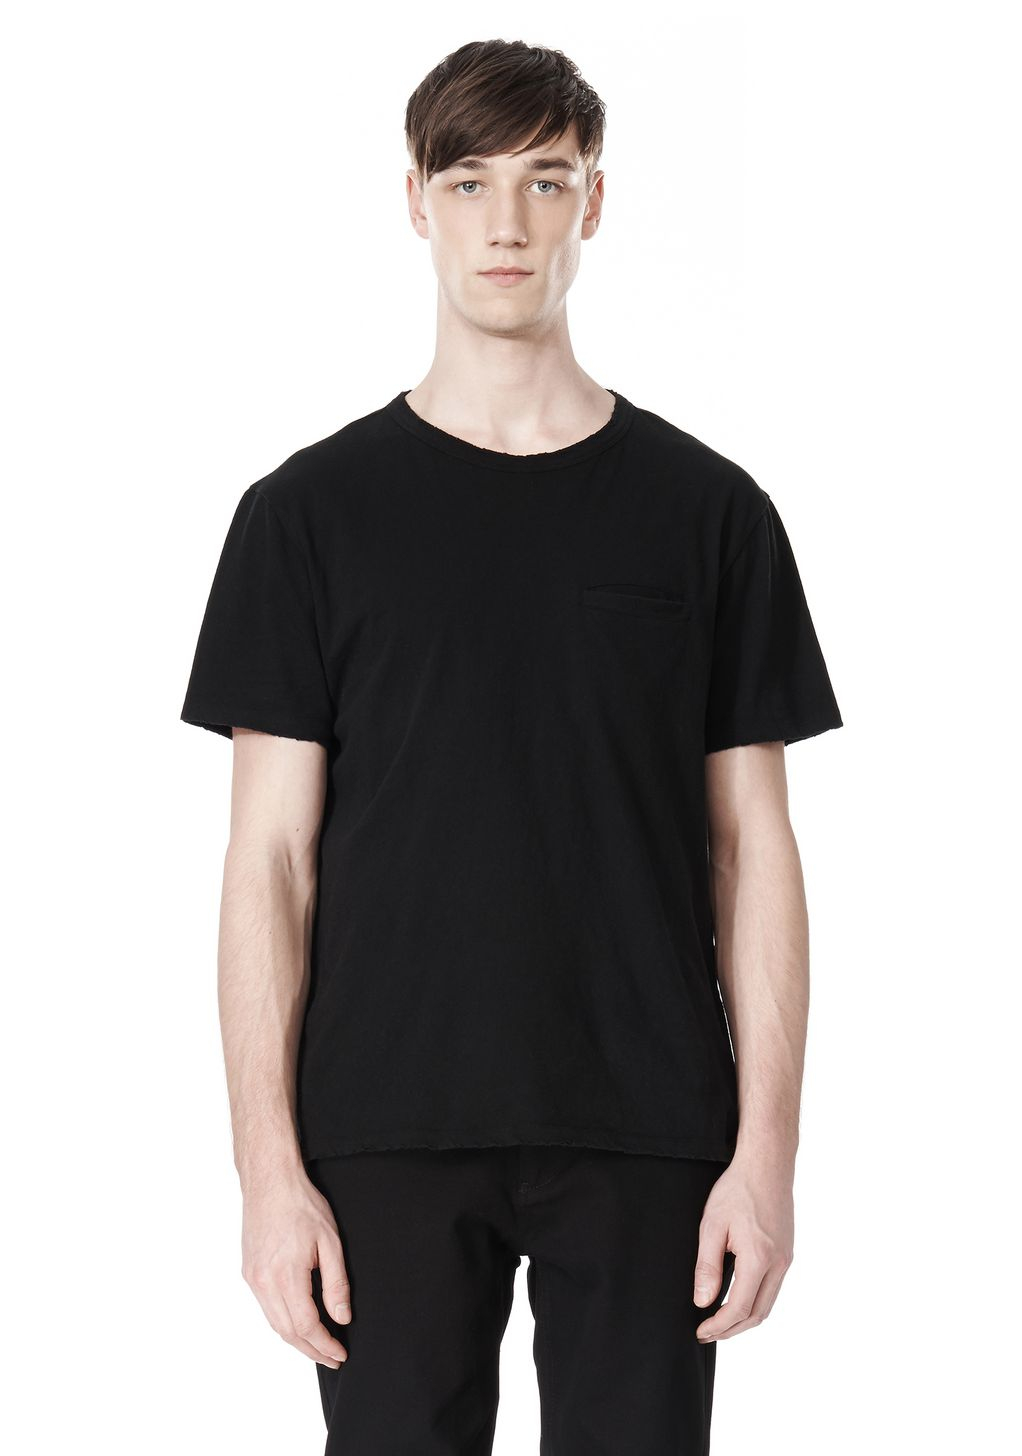 The range of Alexander Wang T-shirts includes classic crew neck cotton tees, stylish sleeveless tops and linen and cotton blend long sleeve T-shirts. There is a wide selection of Alexander Wang T-shirt designs showcased at the Stylight site.